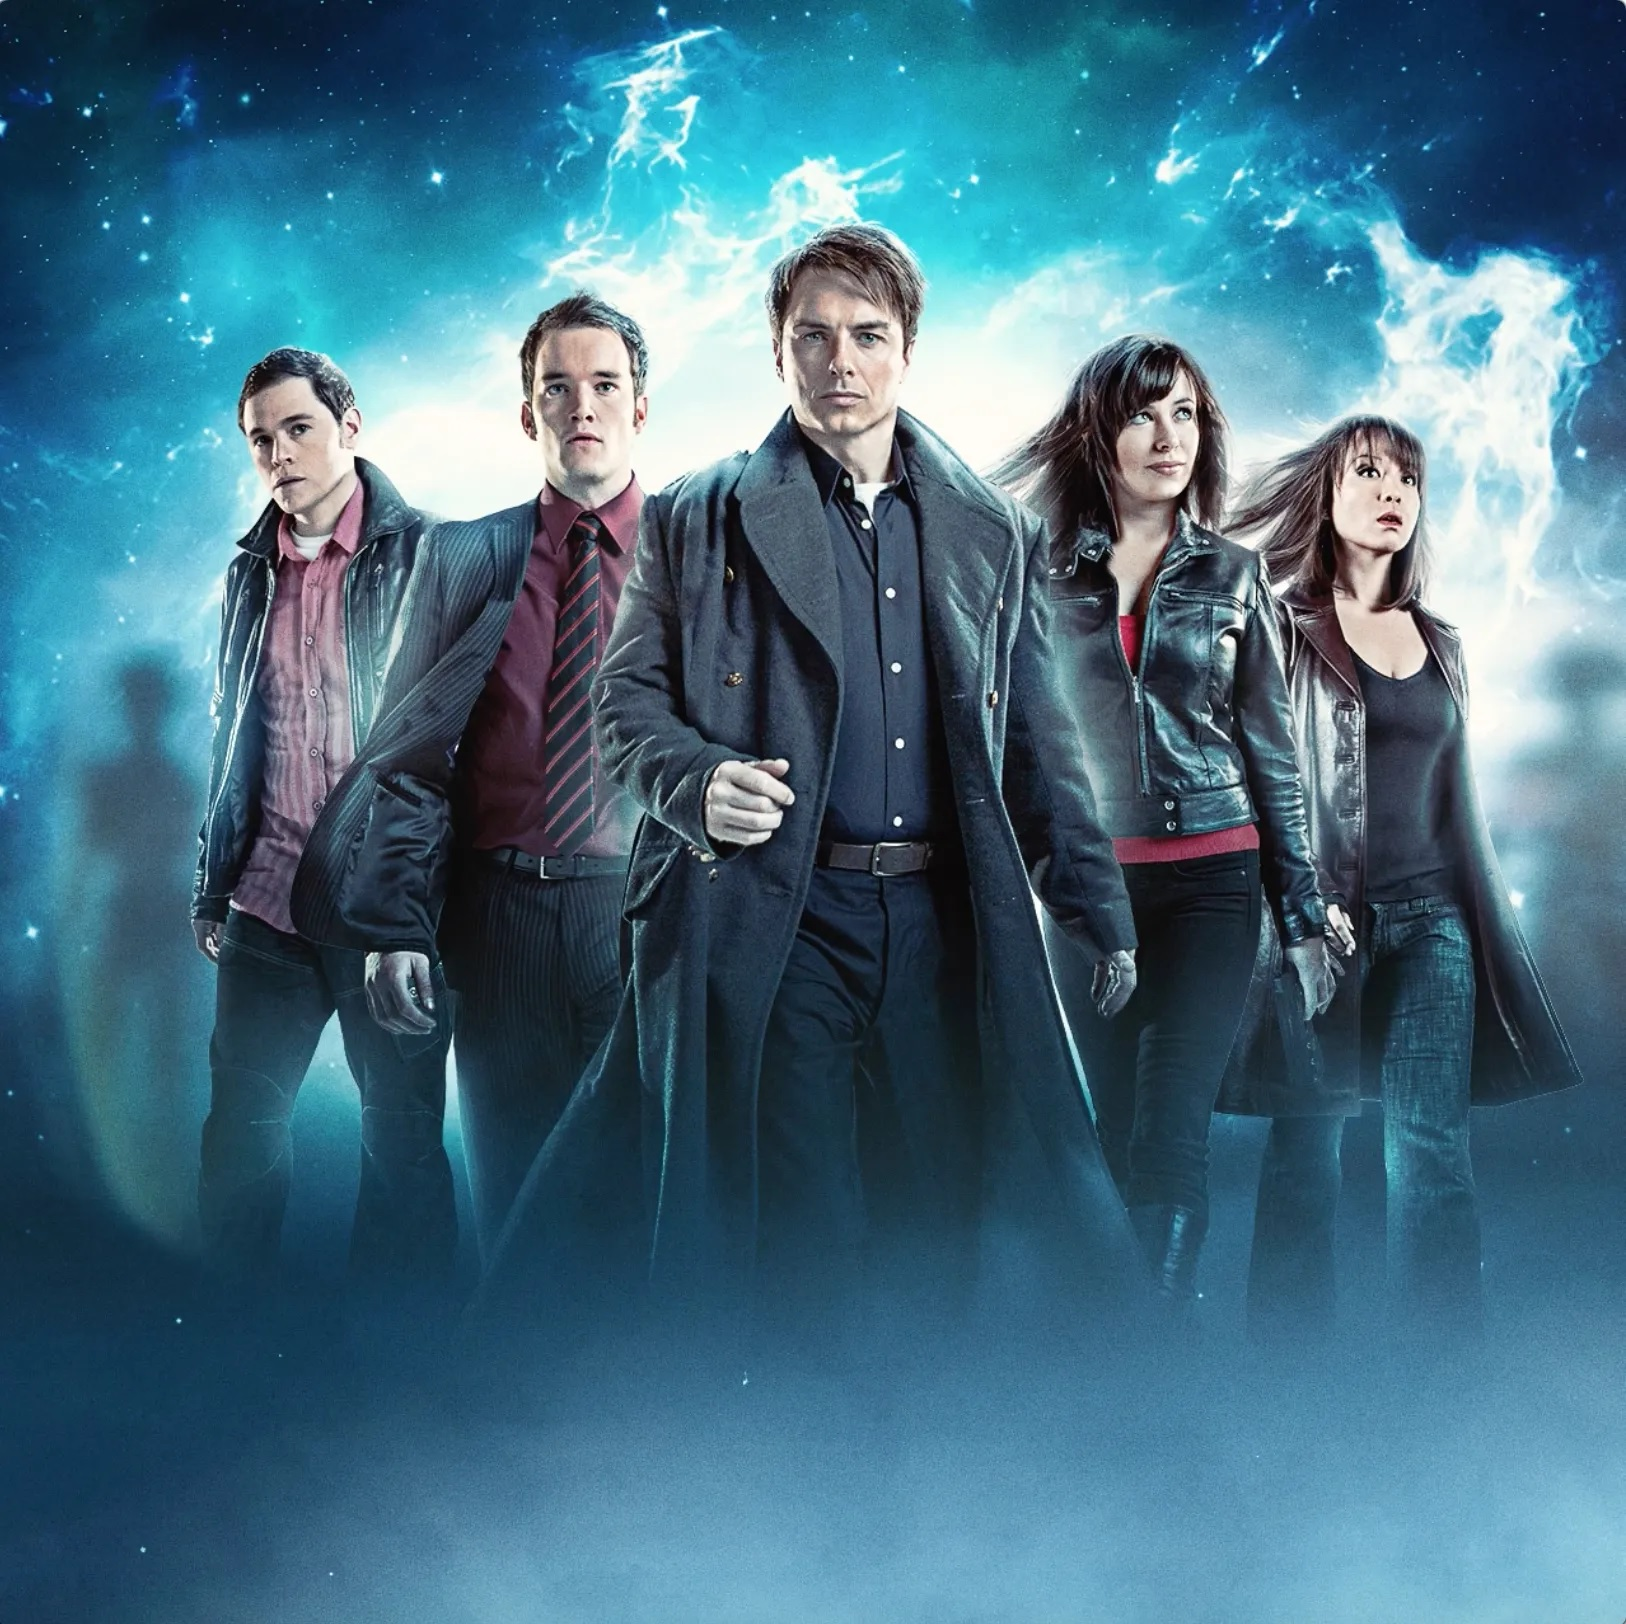 Torchwood Available to Watch on BBC iPlayer for Another Year After Fan Support on Social Media